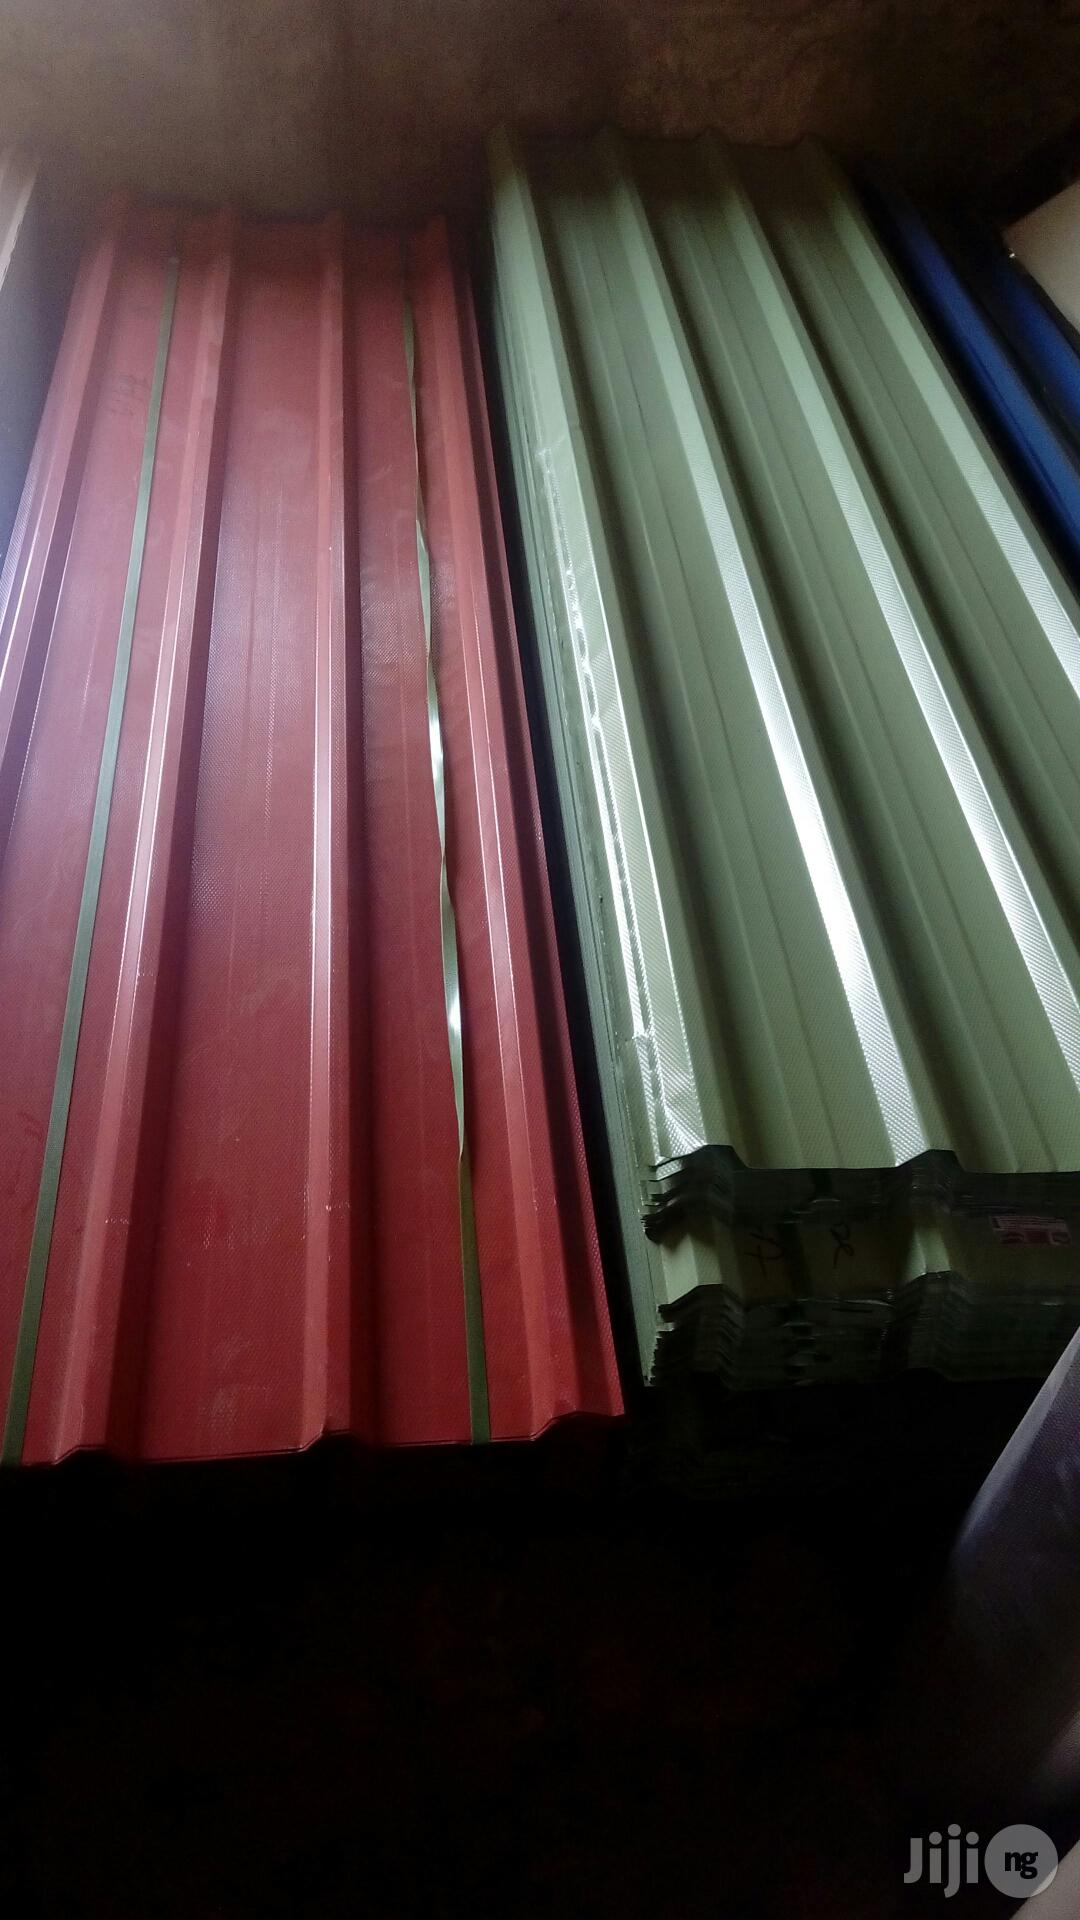 Quality Ghana Zinc Roofing Sheets In Dei Dei Building Materials Sunday Eze Jiji Ng